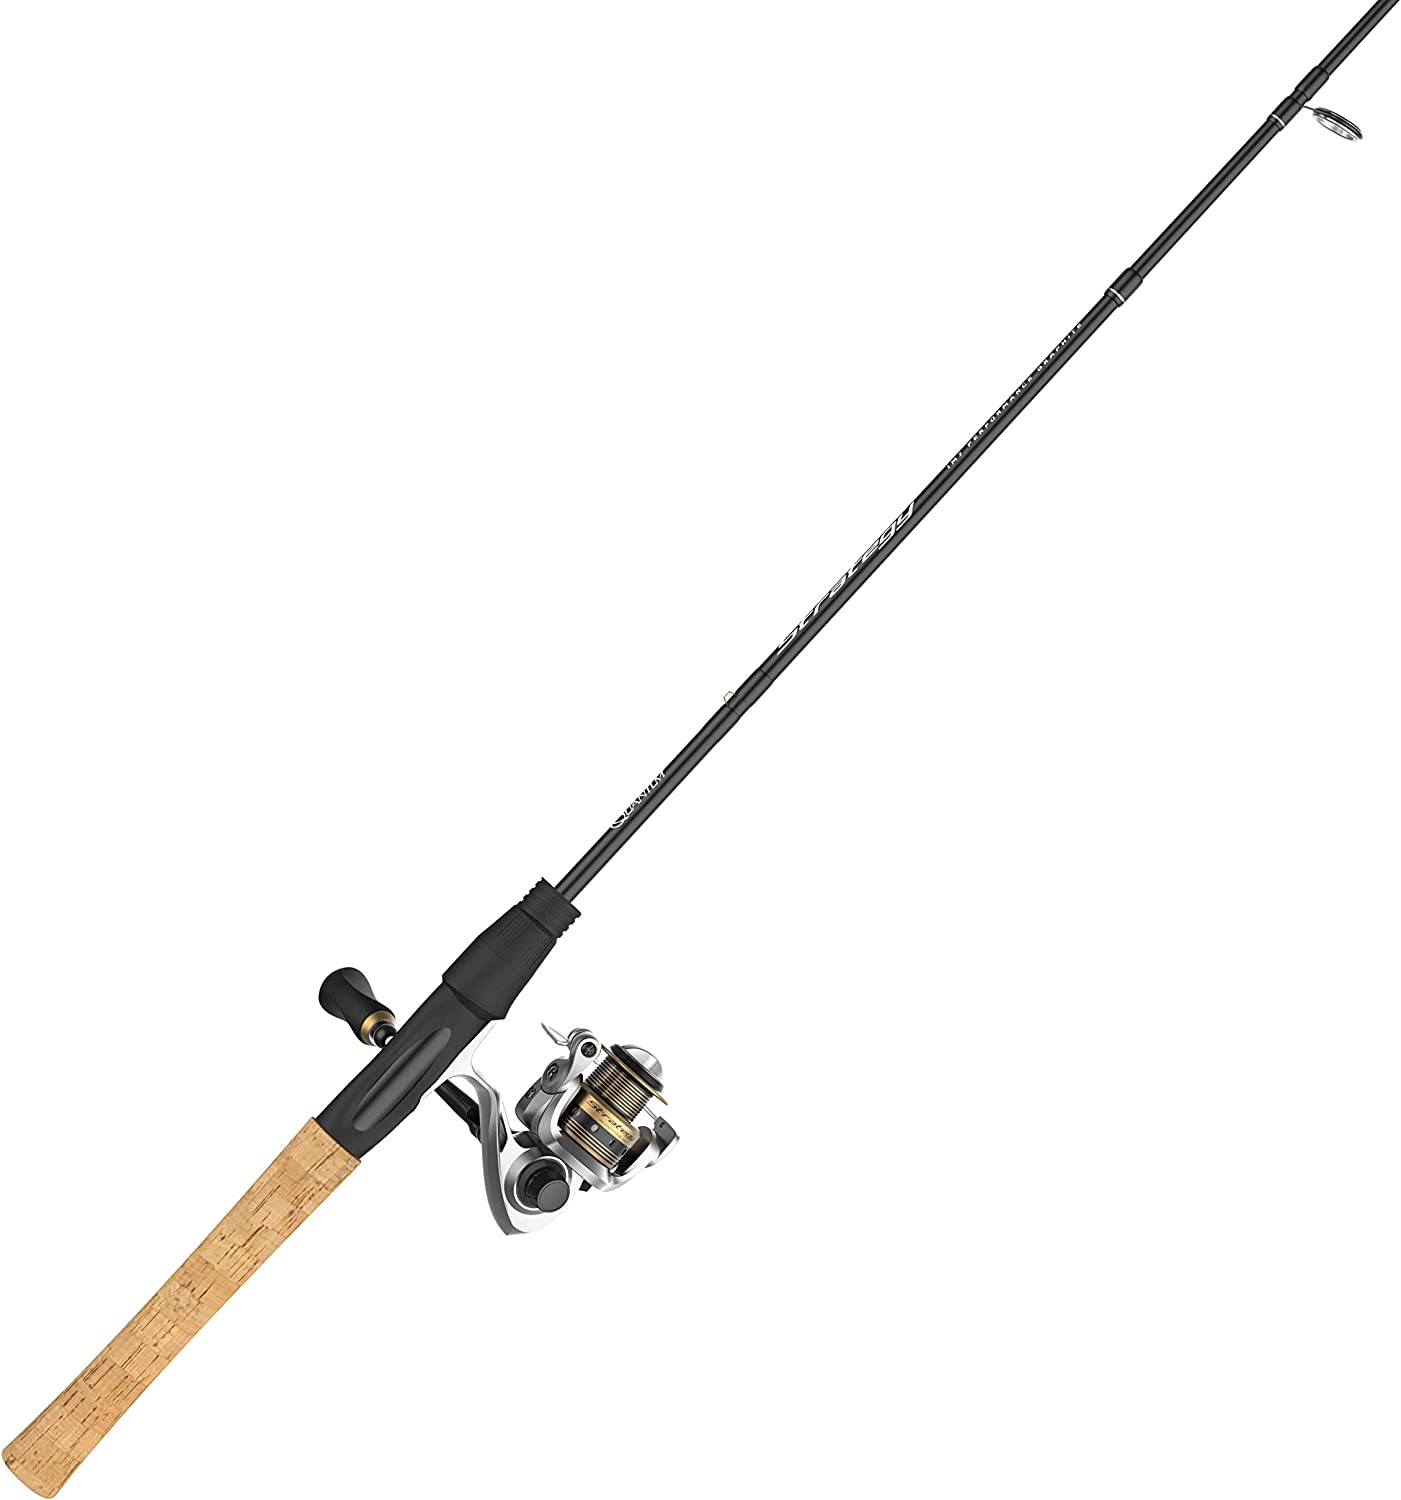 Quantum Strategy Spinning Reel and 2-Piece Fishing Rod Combo, IM7 Graphite Rod with Cork Handle, Continuous Anti-Reverse Clutch Fishing Reel